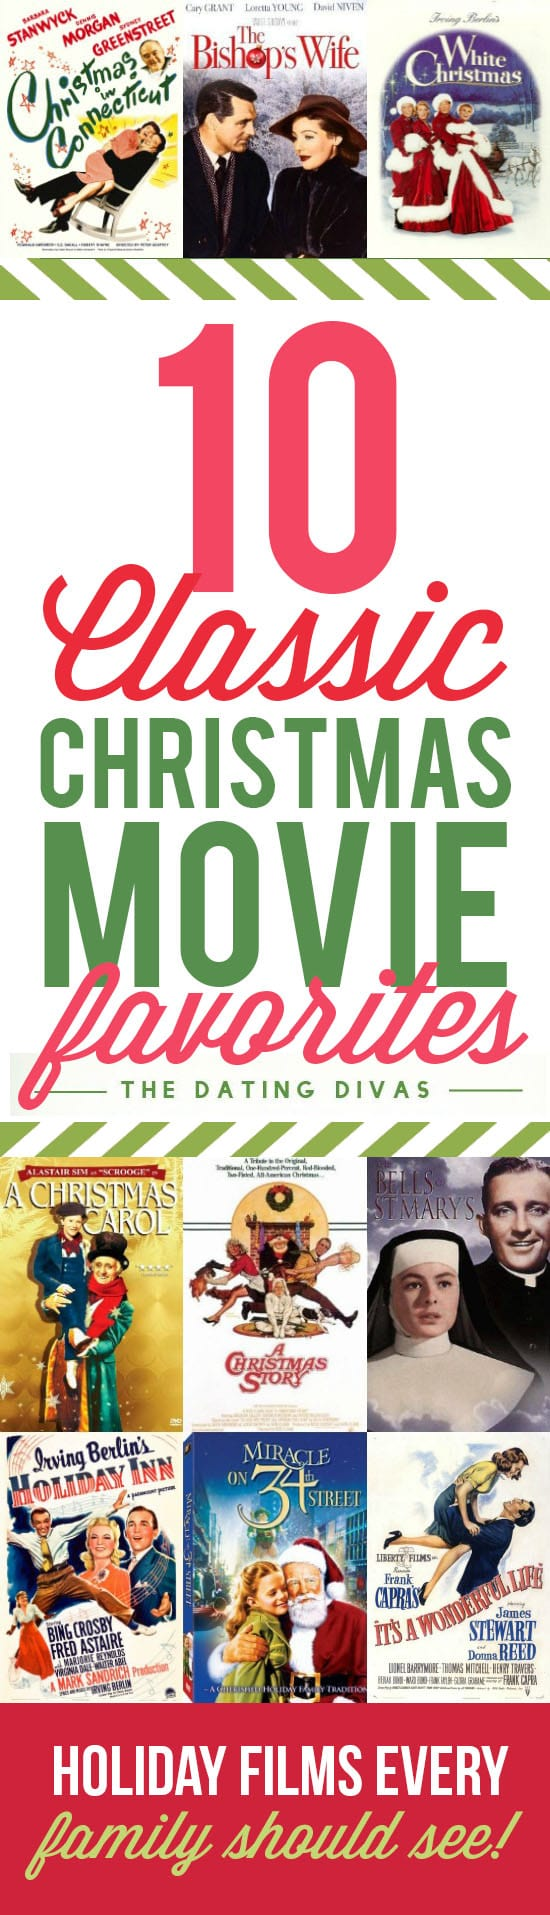 classic christmas movies - The Best Christmas Movies